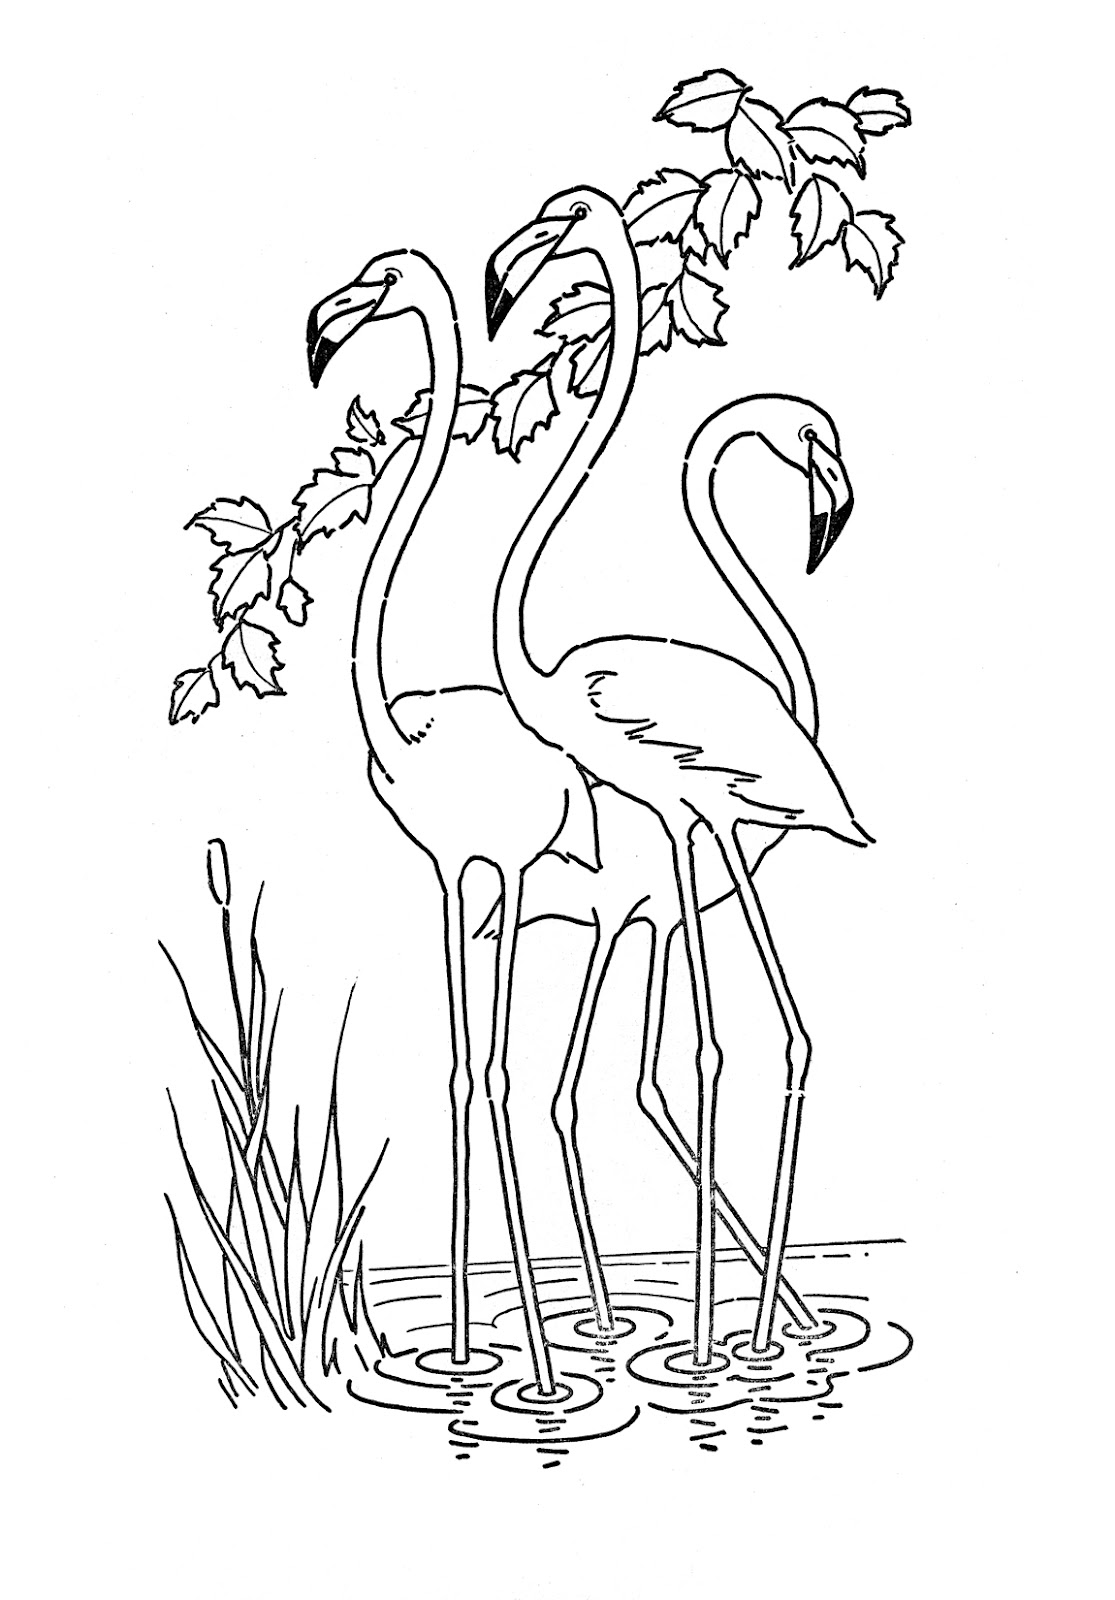 coloring pages for print kids printable flamingo coloring page the graphics fairy coloring print pages for